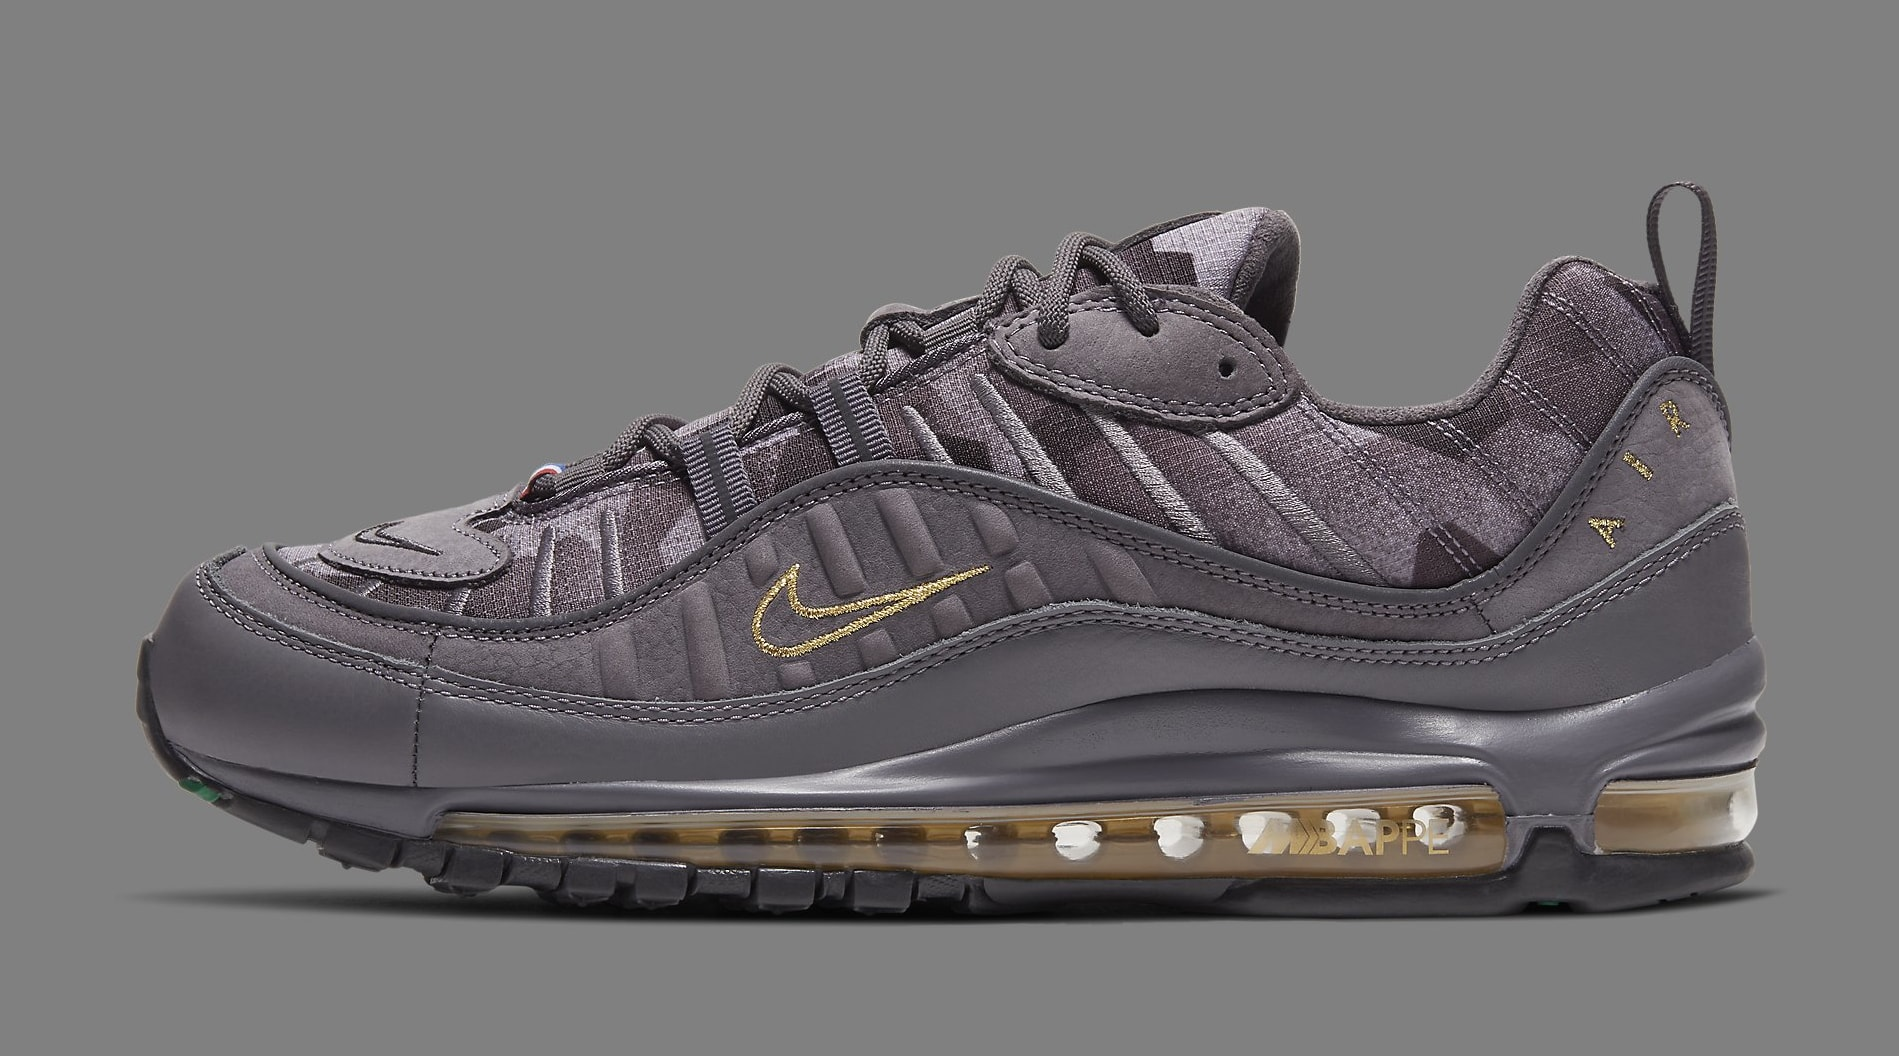 nike-air-max-98-kylian-mbappe-ct1531-001-lateral